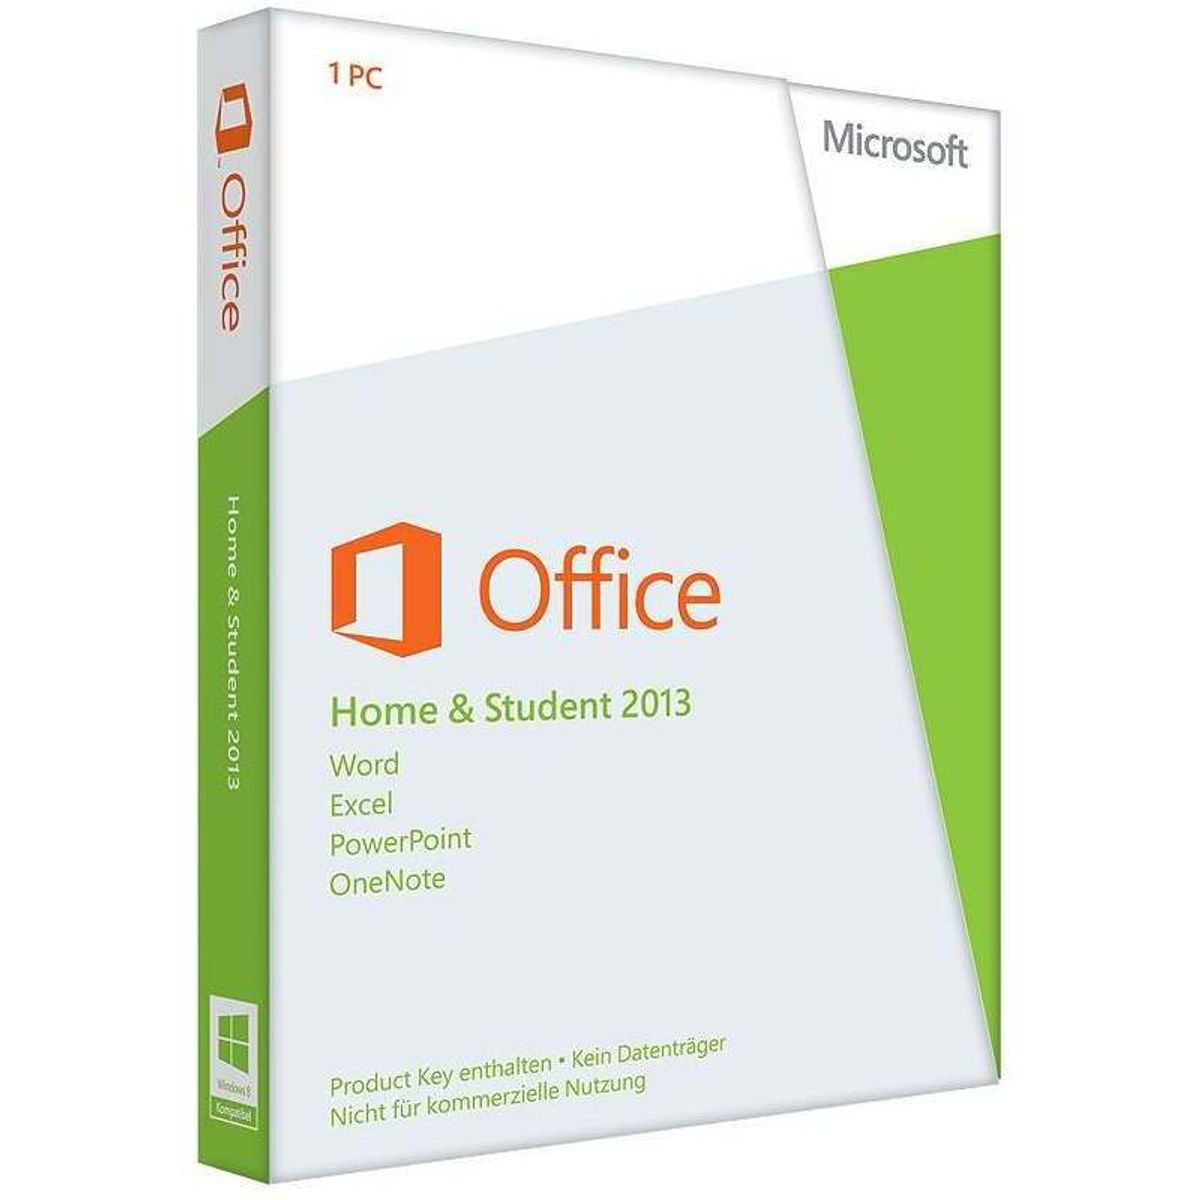 Microsoft Office 2013 Home and Student, PKC (PC, Mac)